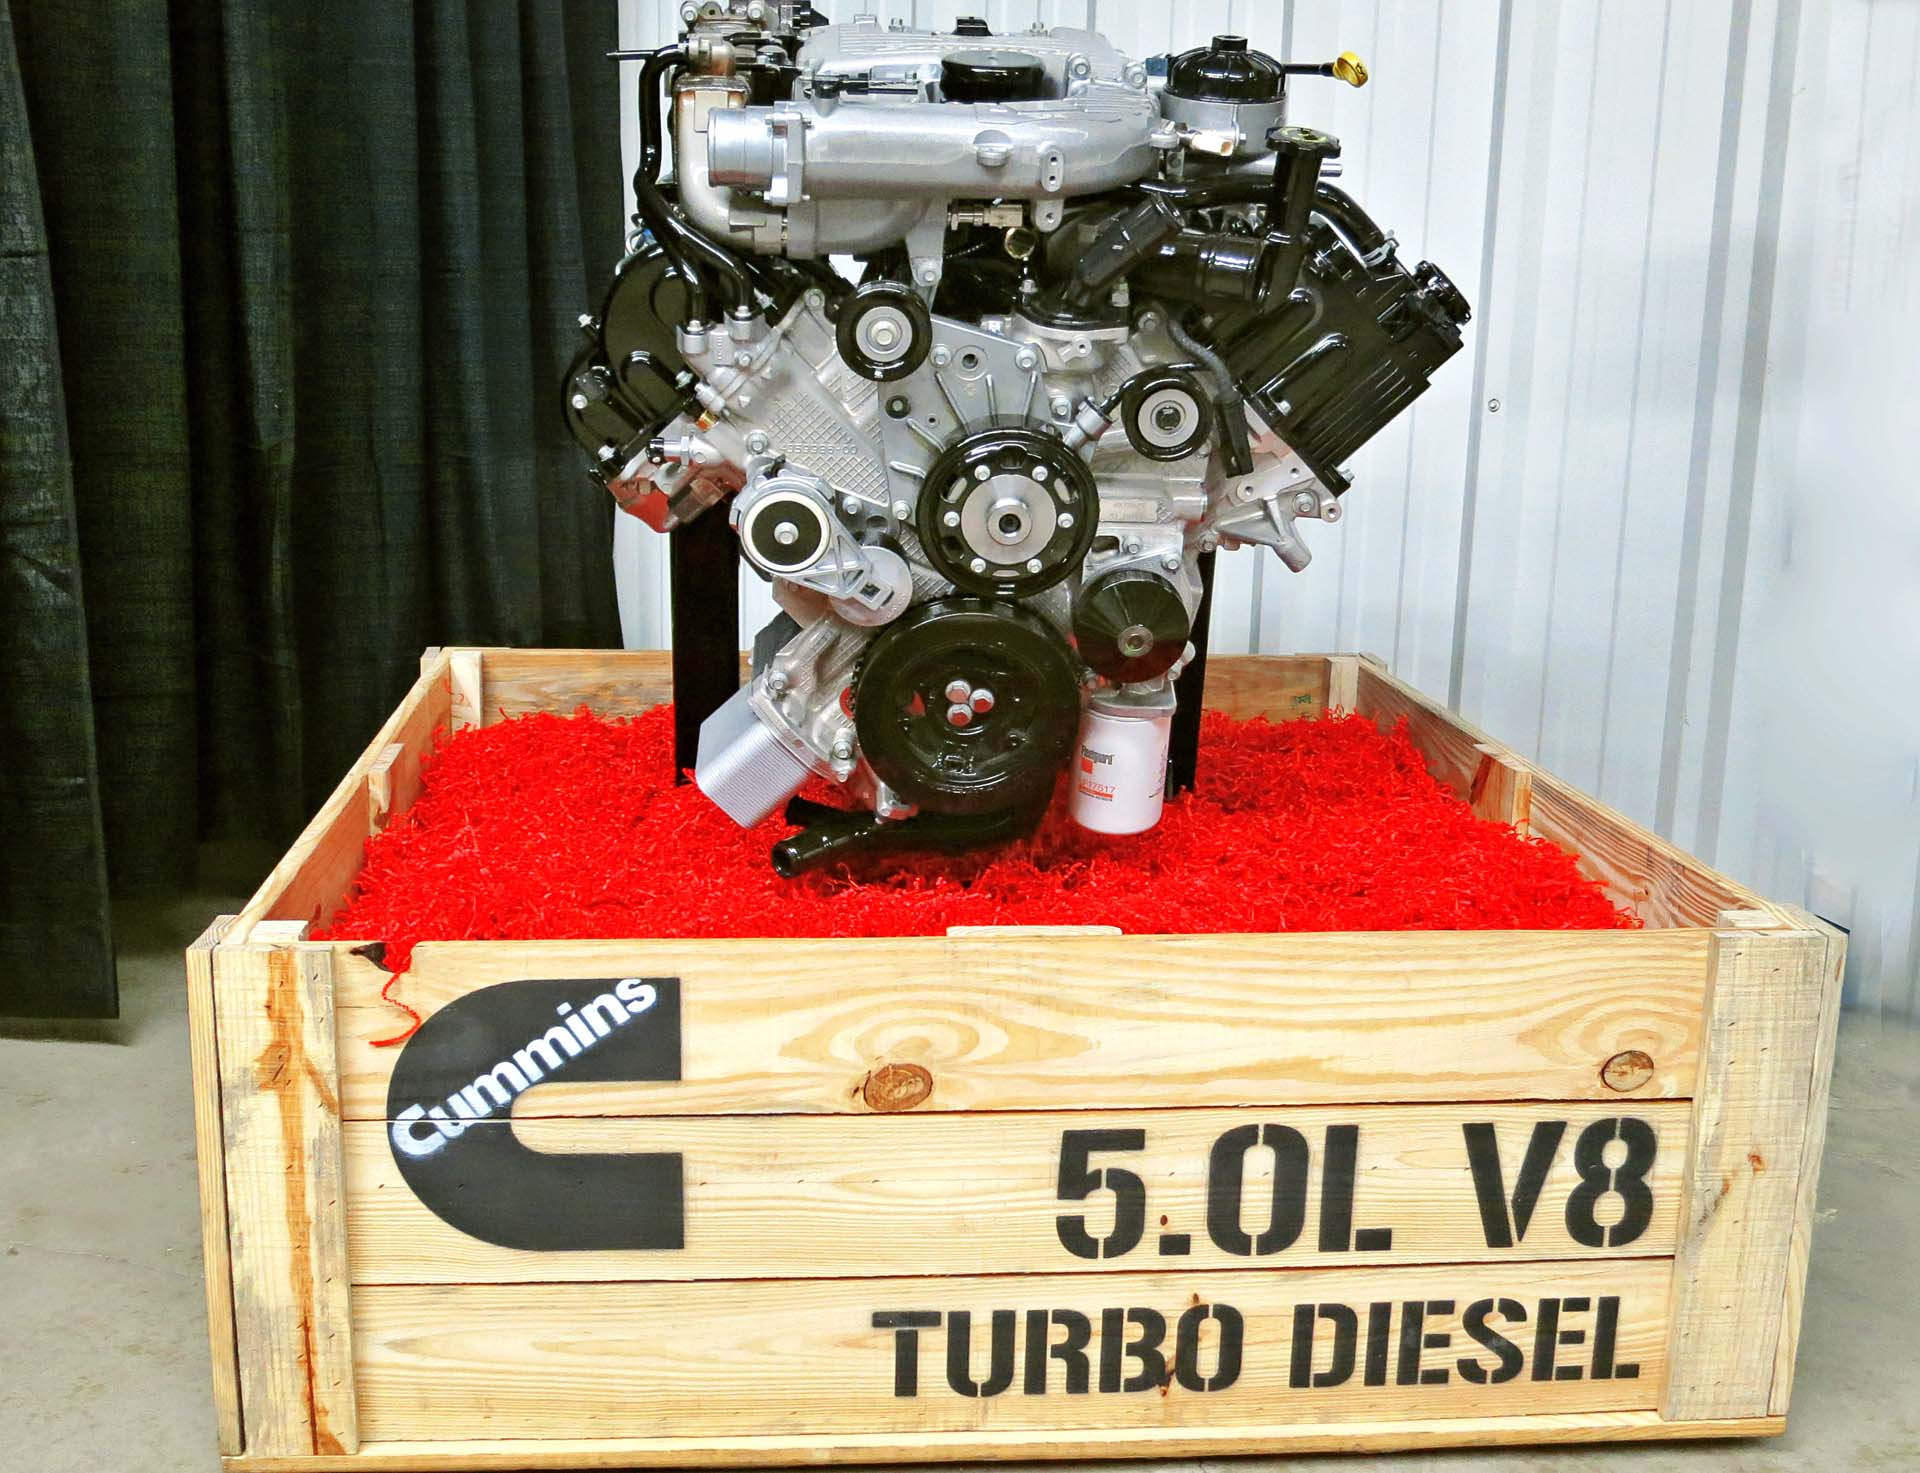 While it shares design similarities with the regular Titan, the XD has a unique front end, engineered to accommodate the larger diesel engine. The Titan XD's launch marks the debut of Cummins' new two-stage turbo system, designed to eliminate traditional turbo lag.<br><br> The 5.0-litre V8 diesel features a lightweight and compacted graphite iron block, aluminum heads and composite valve covers. It puts out 310 horsepower, but more importantly, 555 lb-ft of torque at 1,600 rpm. That's 45 percent more torque than the gas-powered Titan.